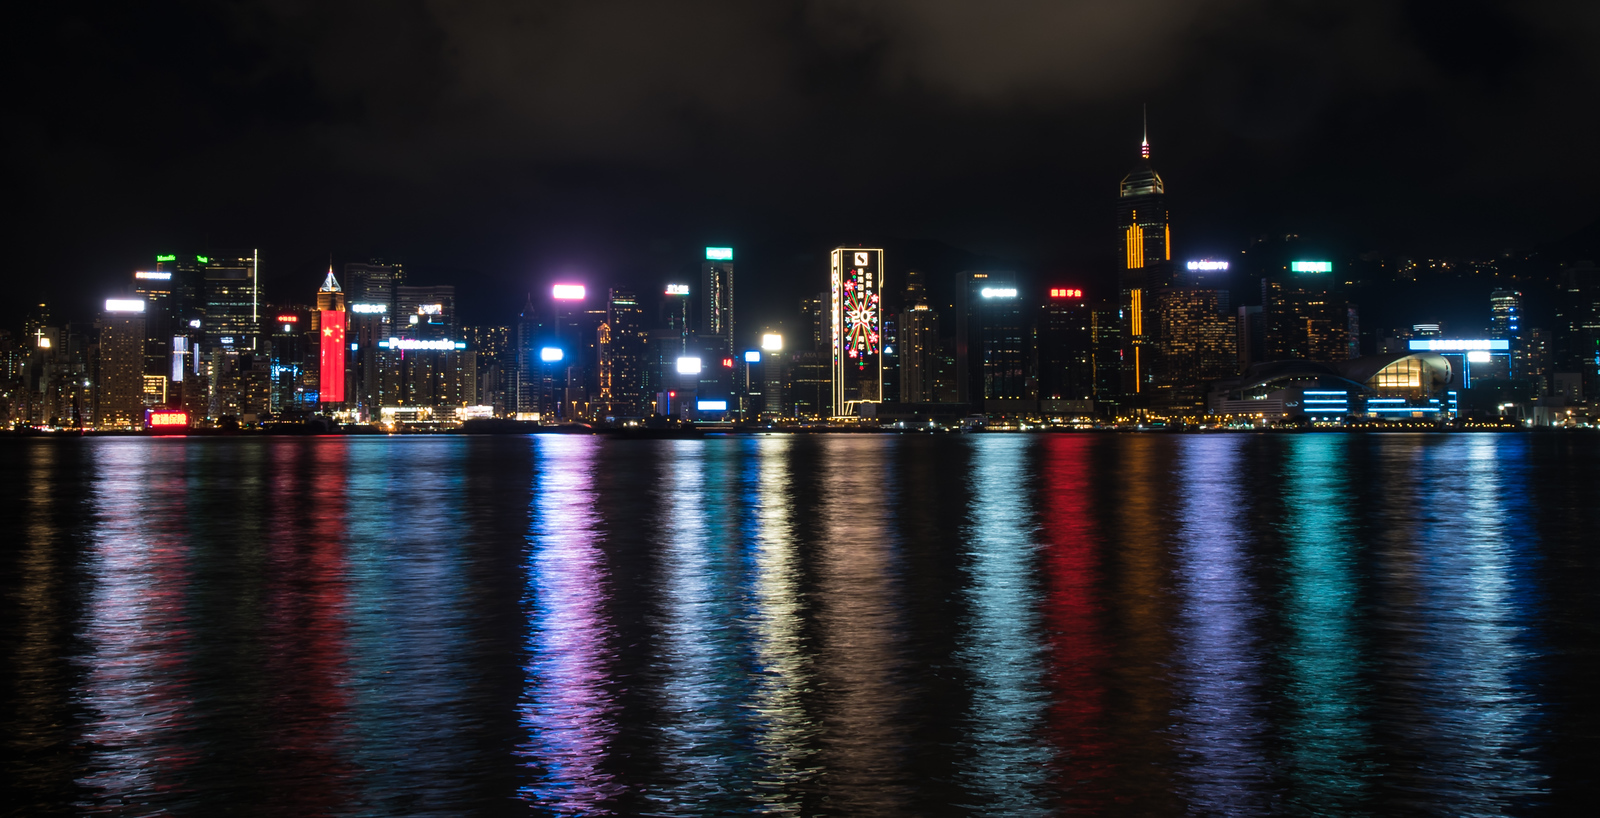 First saw this reflection the night before on the Star Ferry.  Went back with the tripod to get a nicer shot.